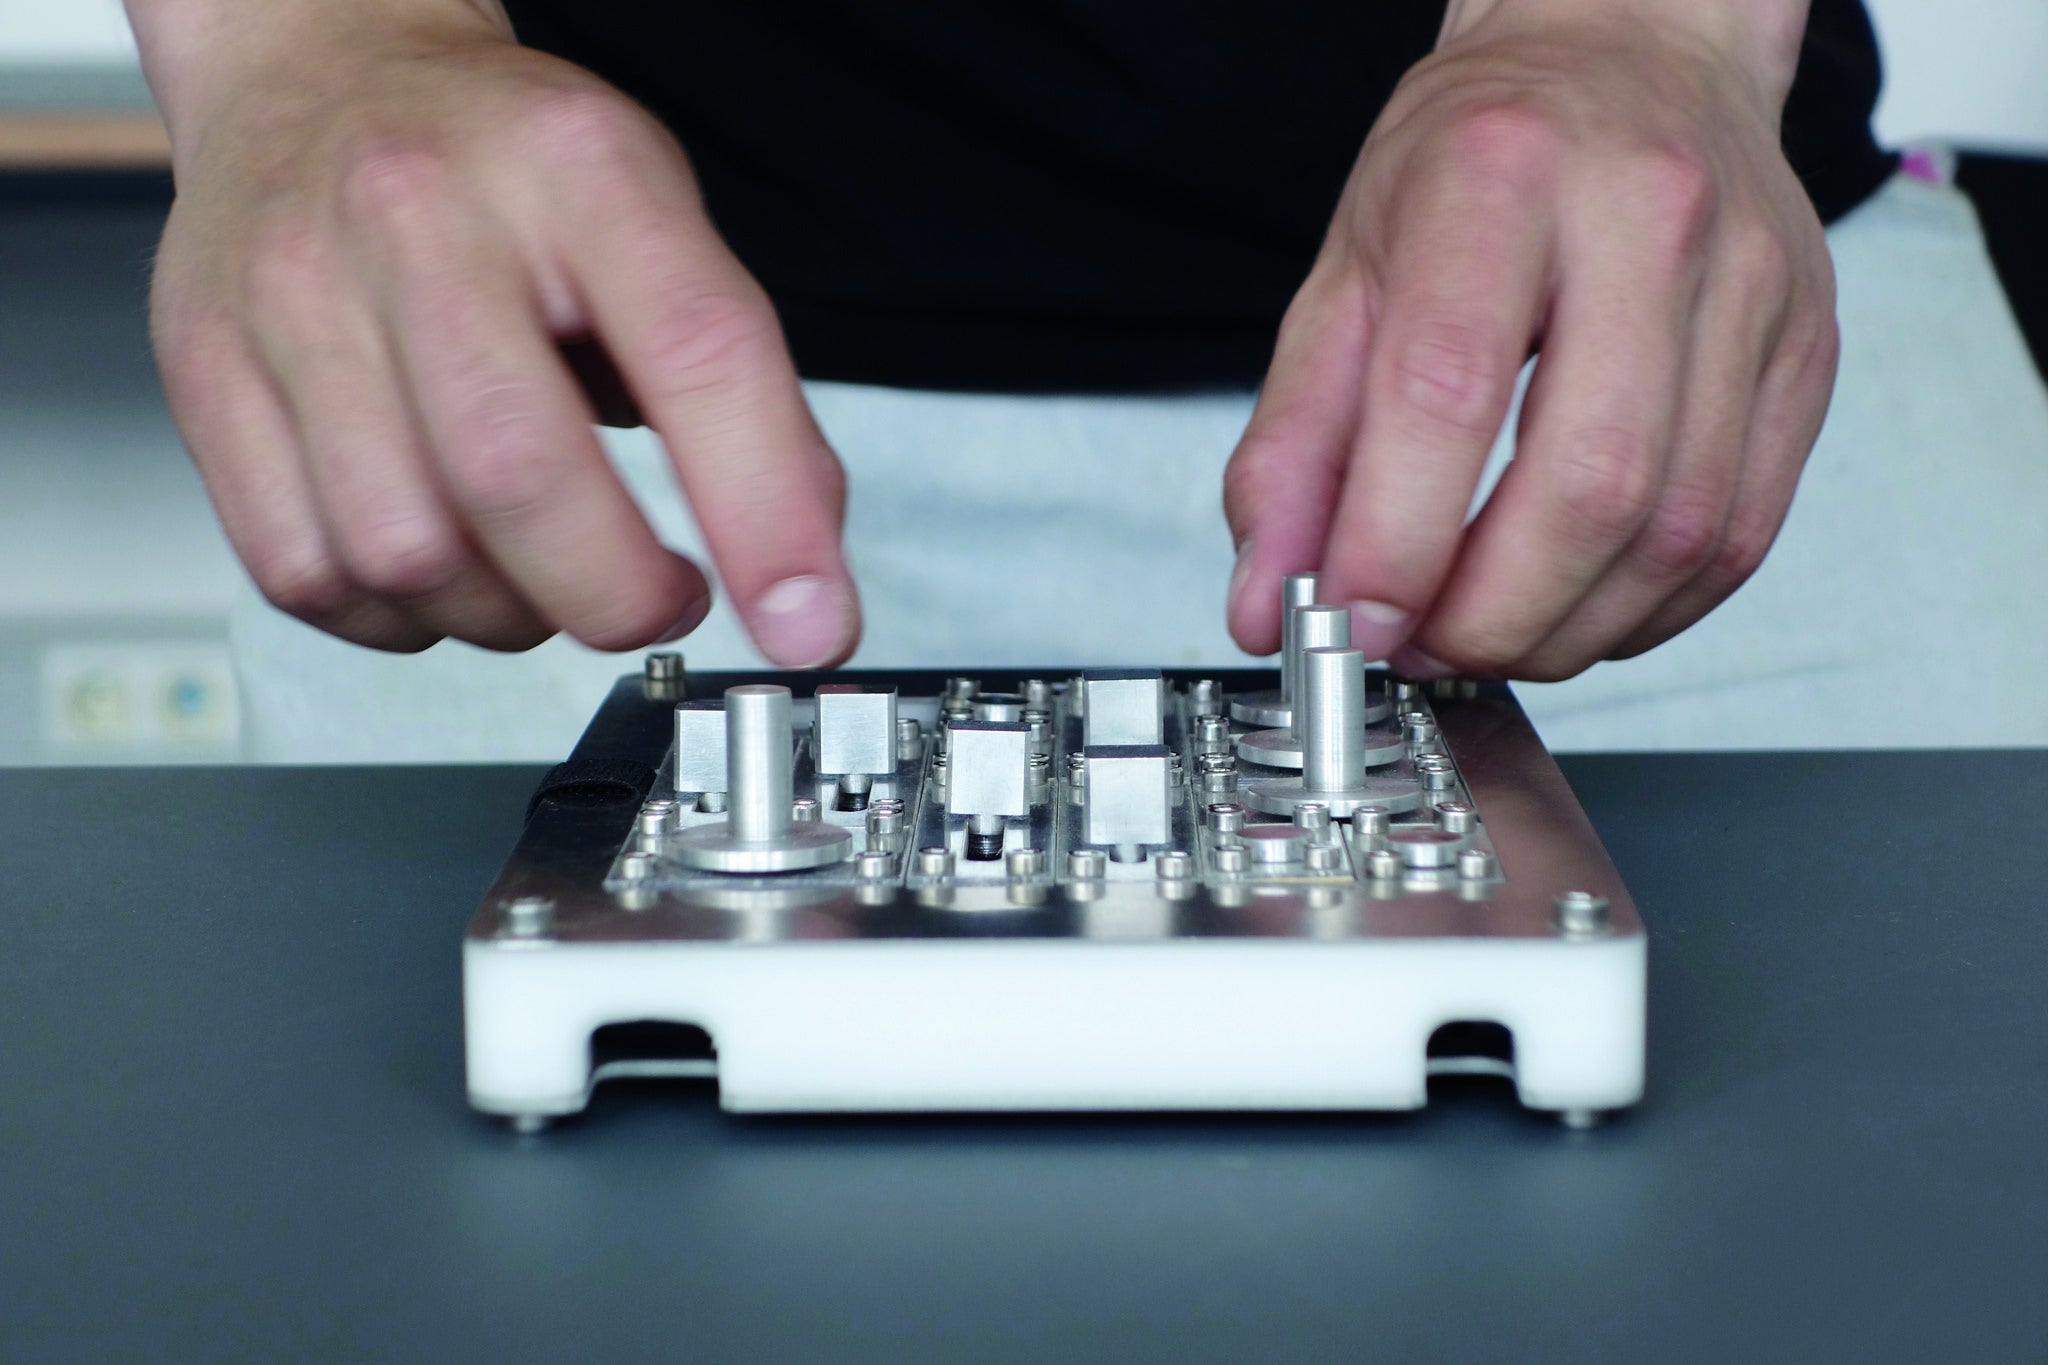 These Knobs And Sliders Turn An iPad Into A Custom Tactile Interface